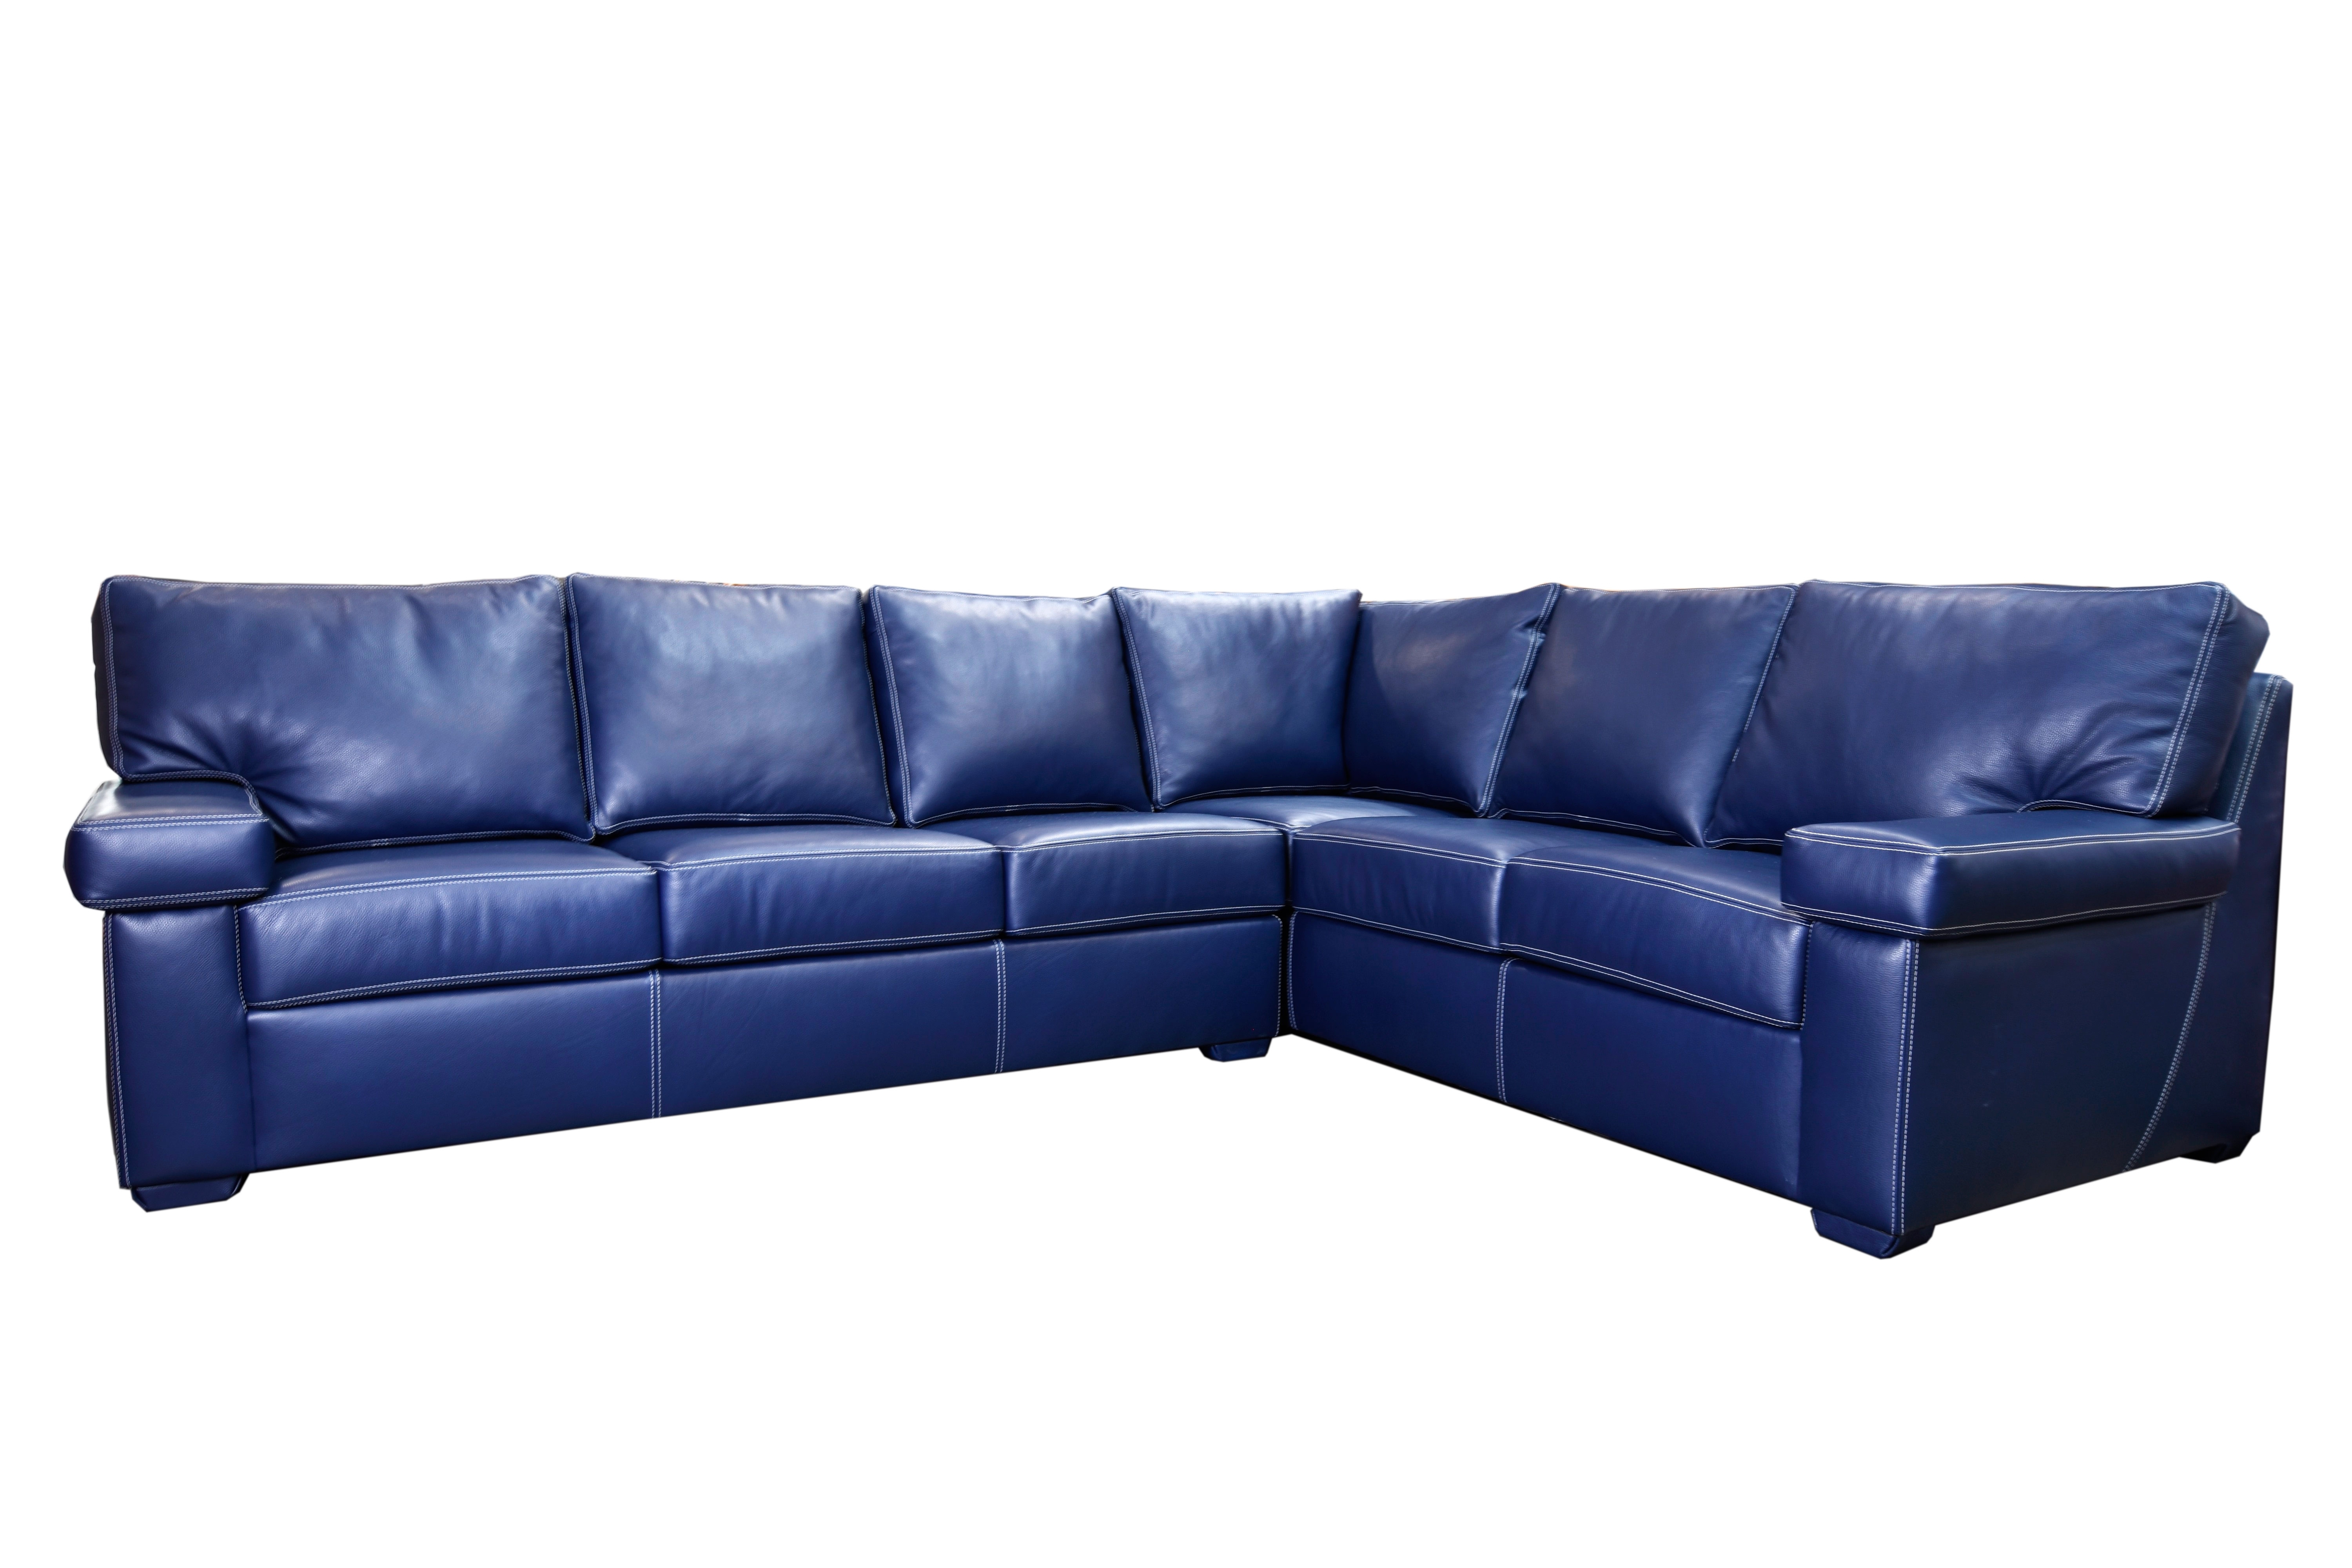 Barcelona Sofa – Creative Leather Regarding Well Known Gilbert Az Sectional Sofas (View 1 of 15)